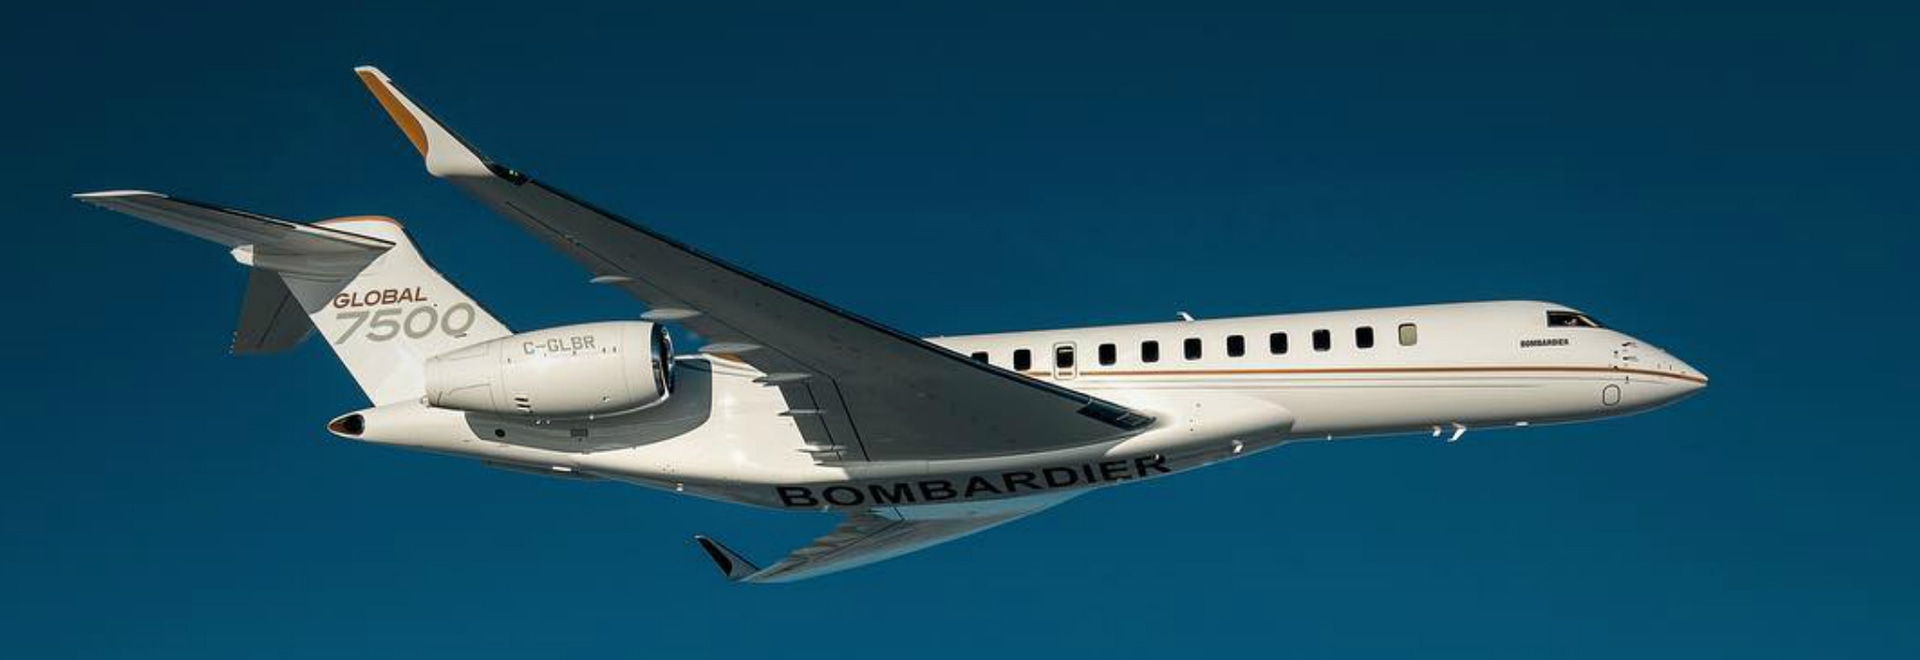 Bombardier predicts a significant revenue increase by next year thanks to 7500 production.